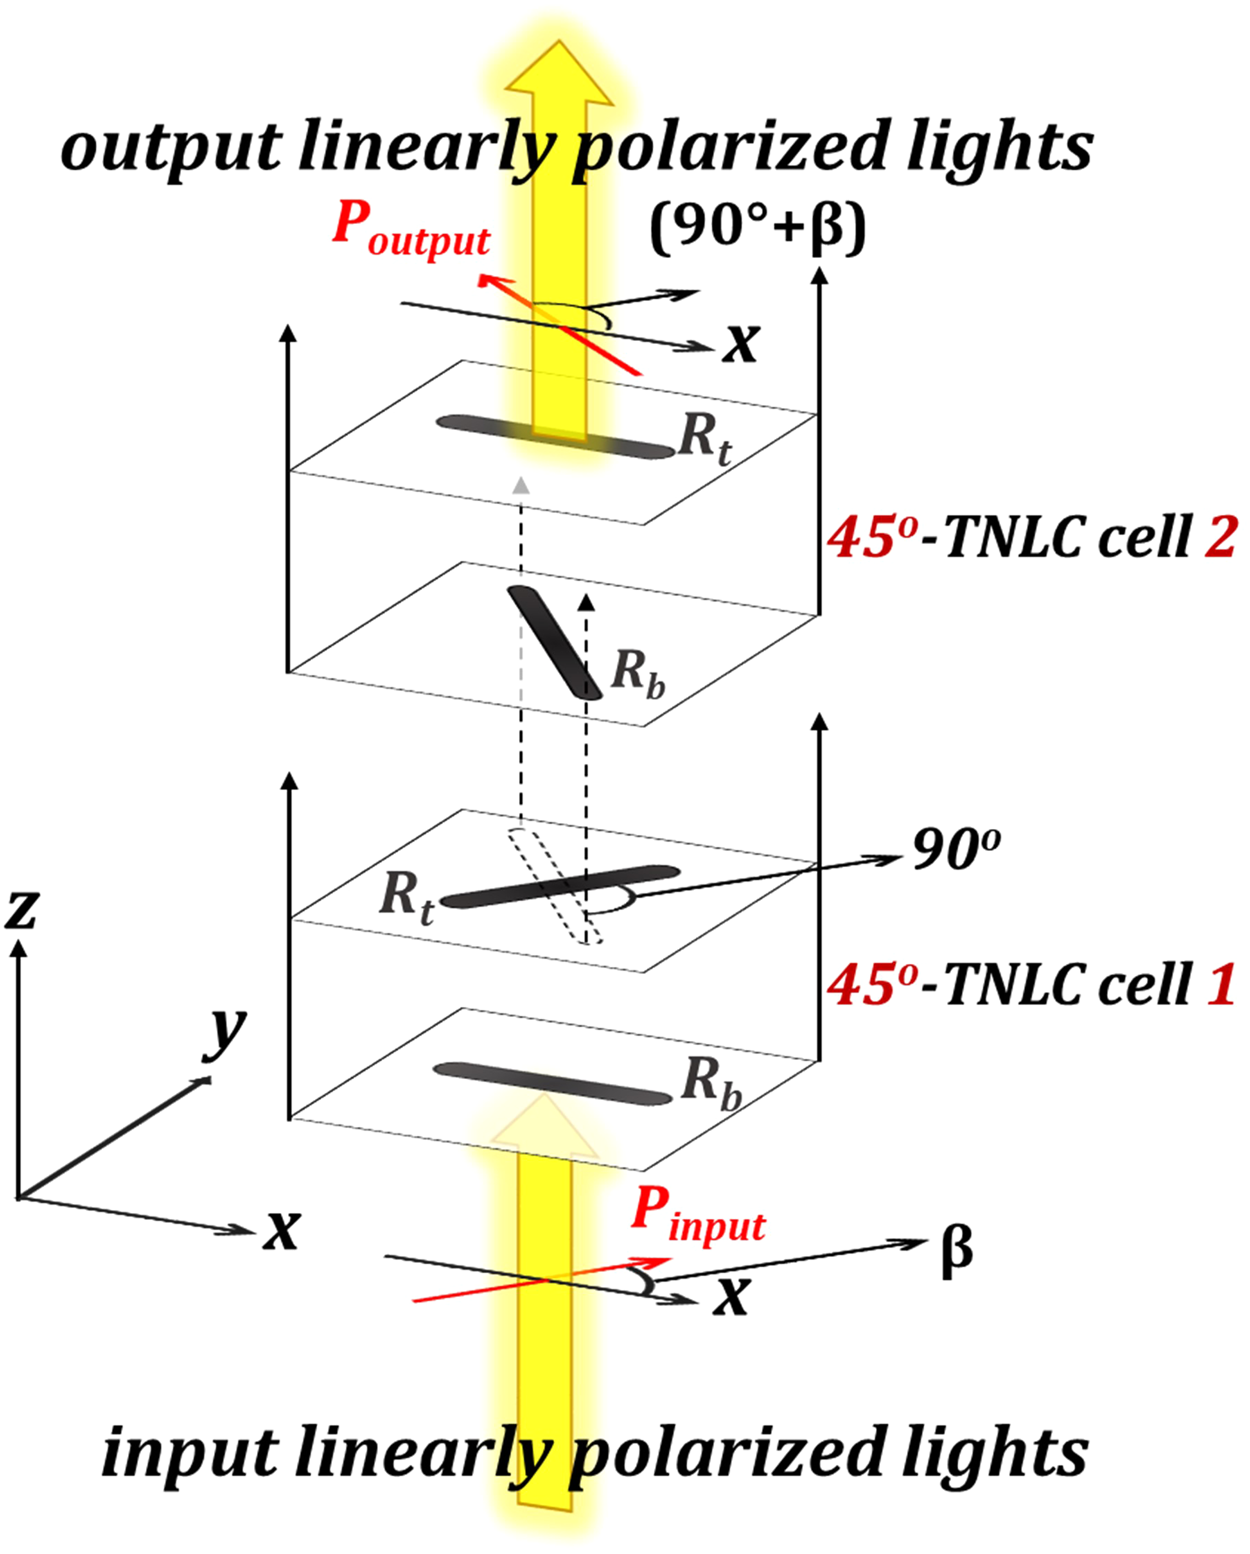 Achromatic Linear Polarization Rotators By Tandem Twisted Nematic Wave Concepts Limited Electronic Circuit Design Simulation Software Liquid Crystal Cells Scientific Reports